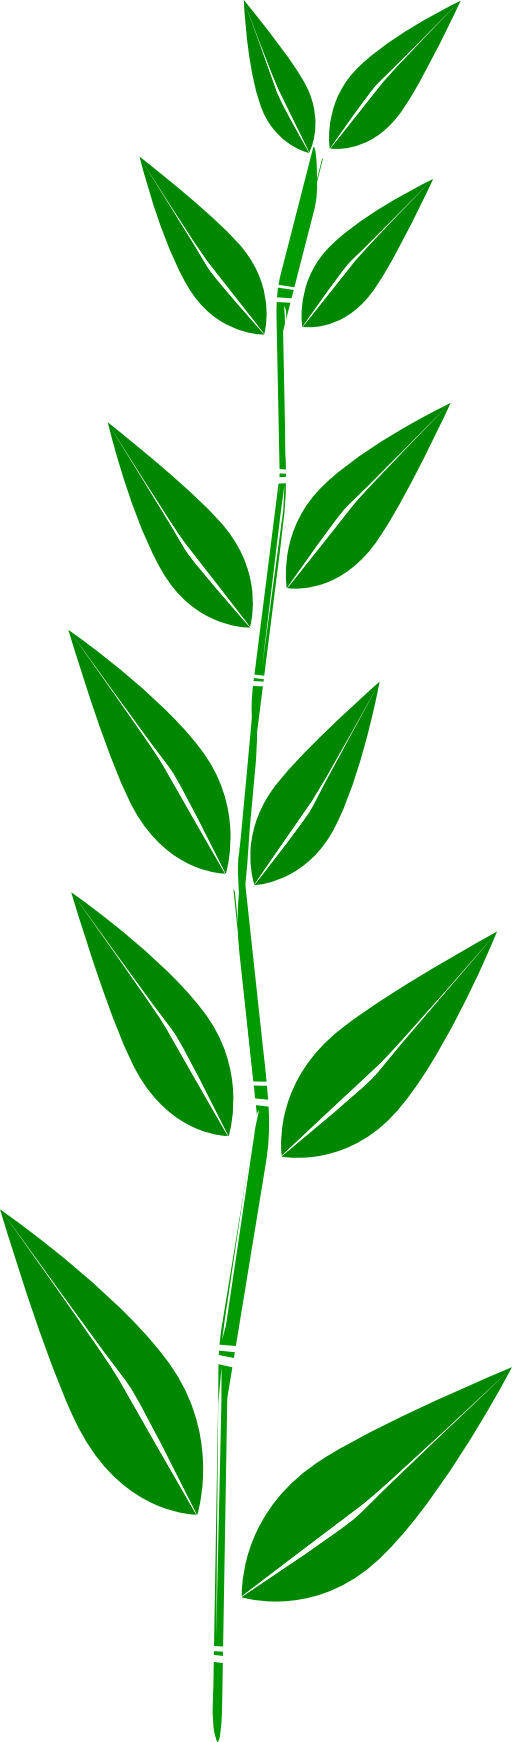 Green Leaf Clipart - ClipArt Best